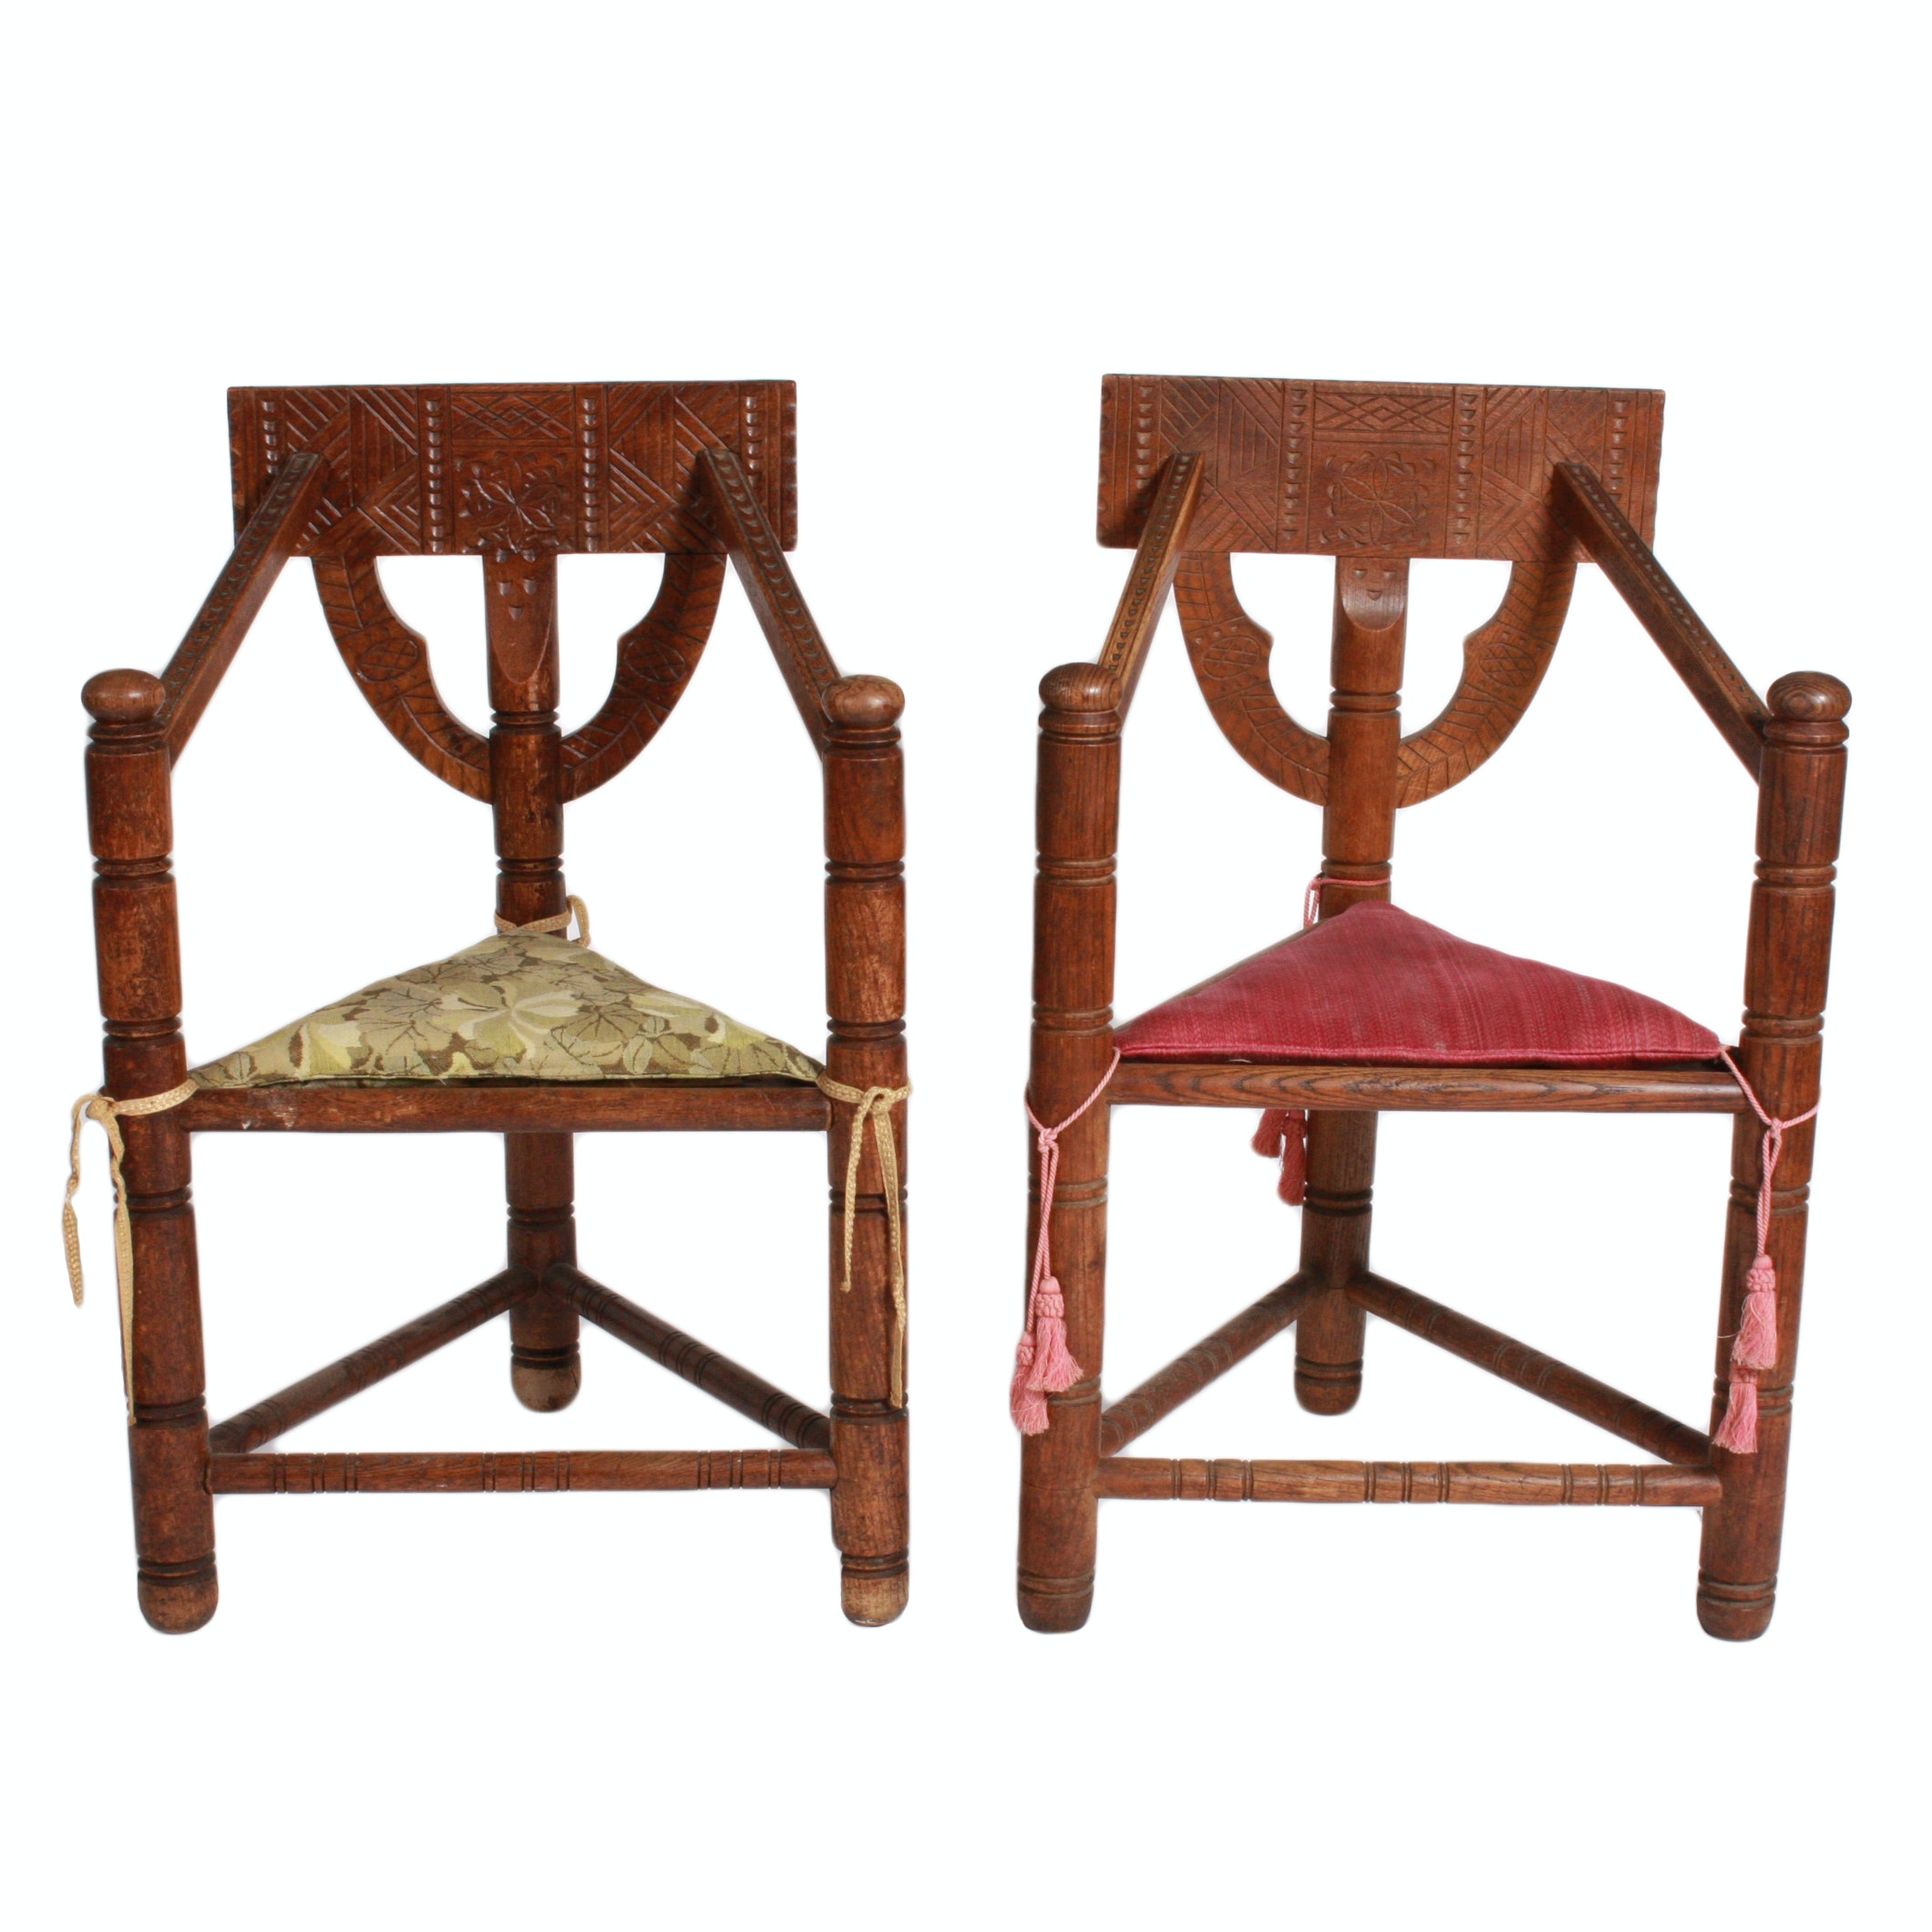 Pair of Swedish Chip-Carved Monk Chairs